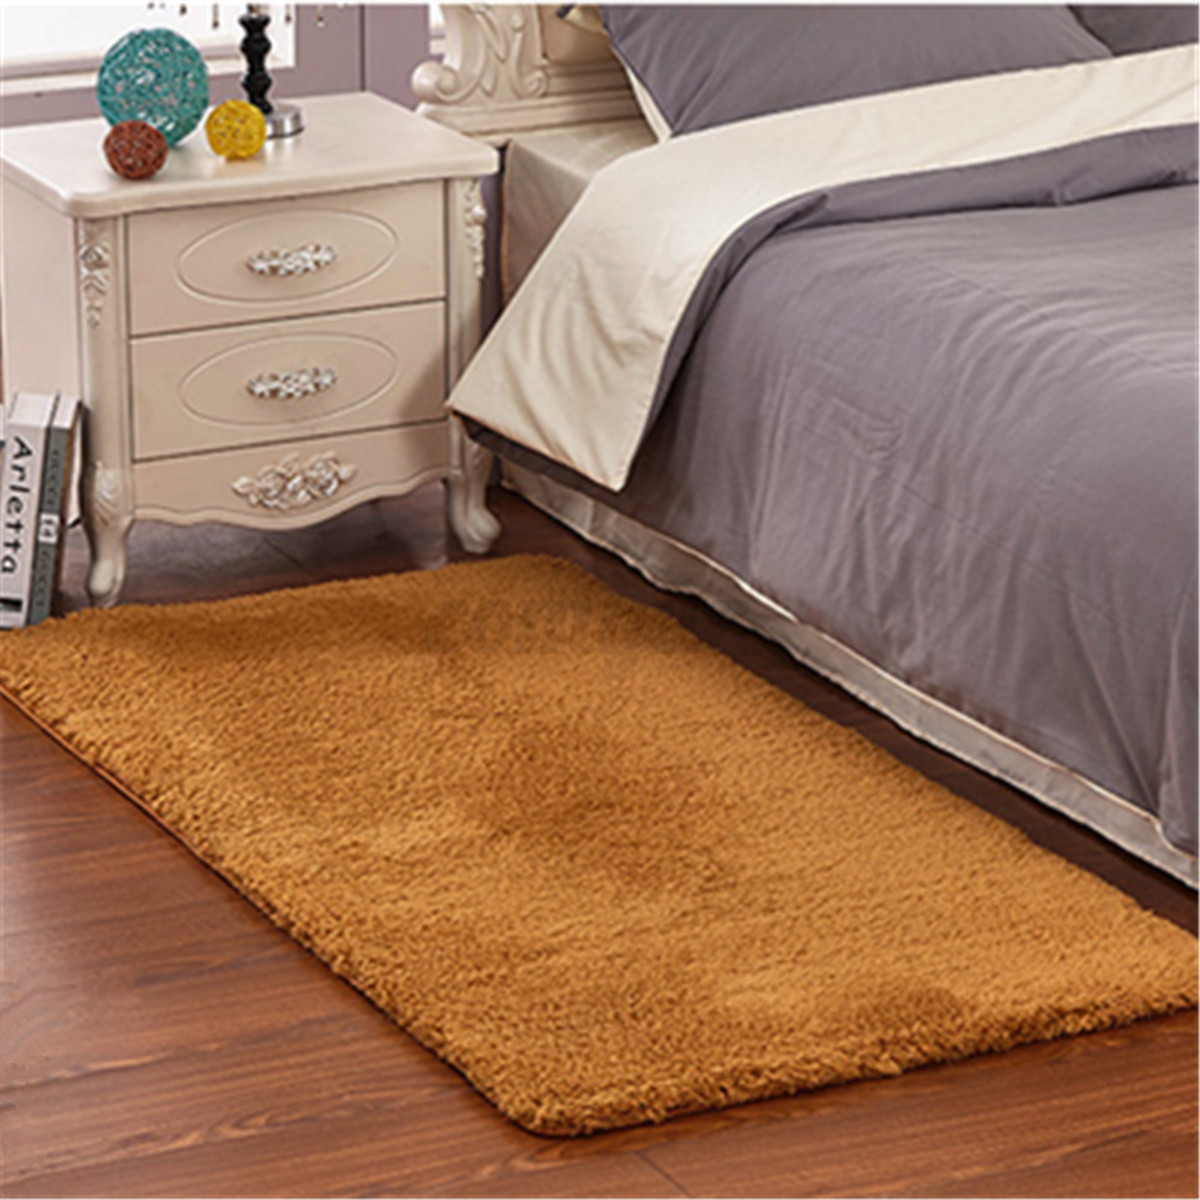 60x120cm Anti-Skid Shaggy Fluffy Area Rug Bedroom Carpet